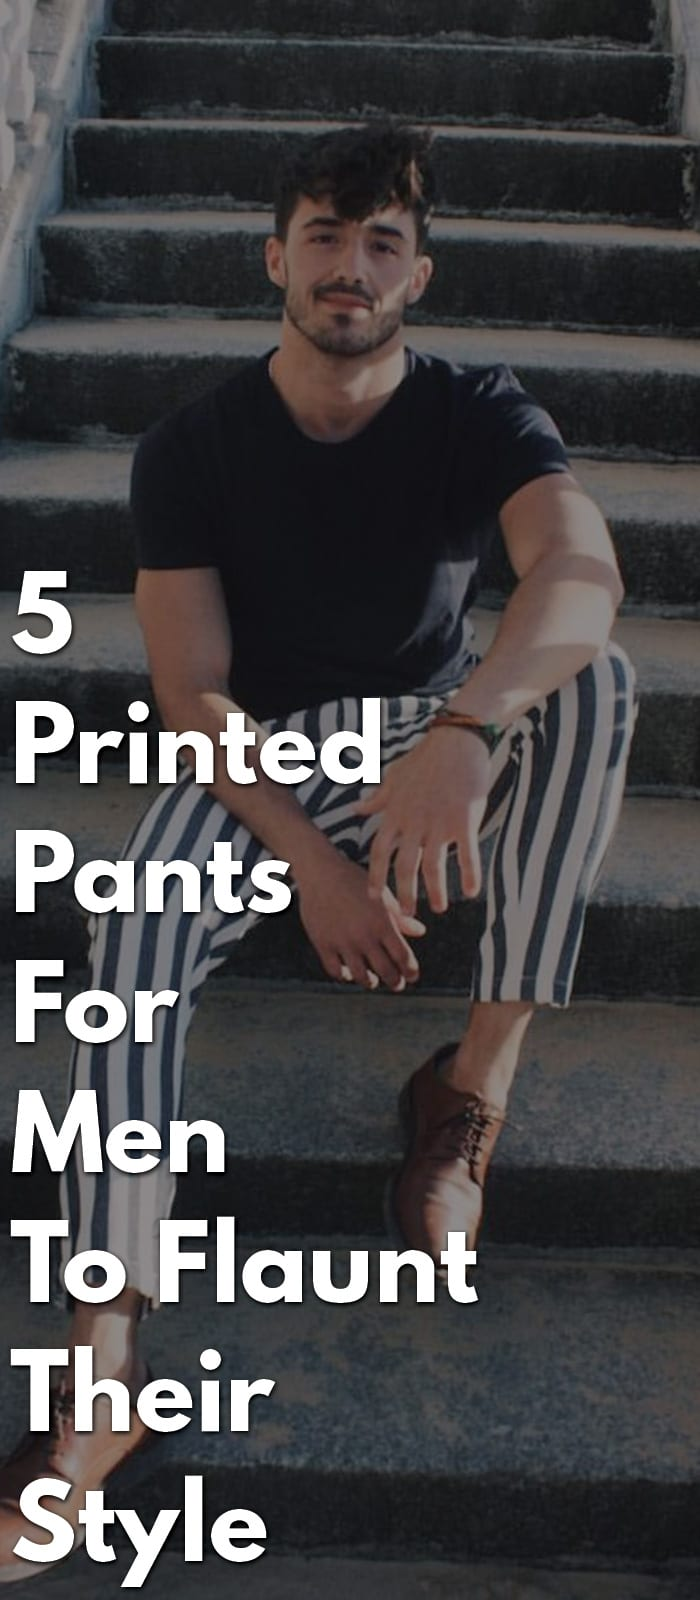 5 Printed Pants For Men To Flaunt Their Style